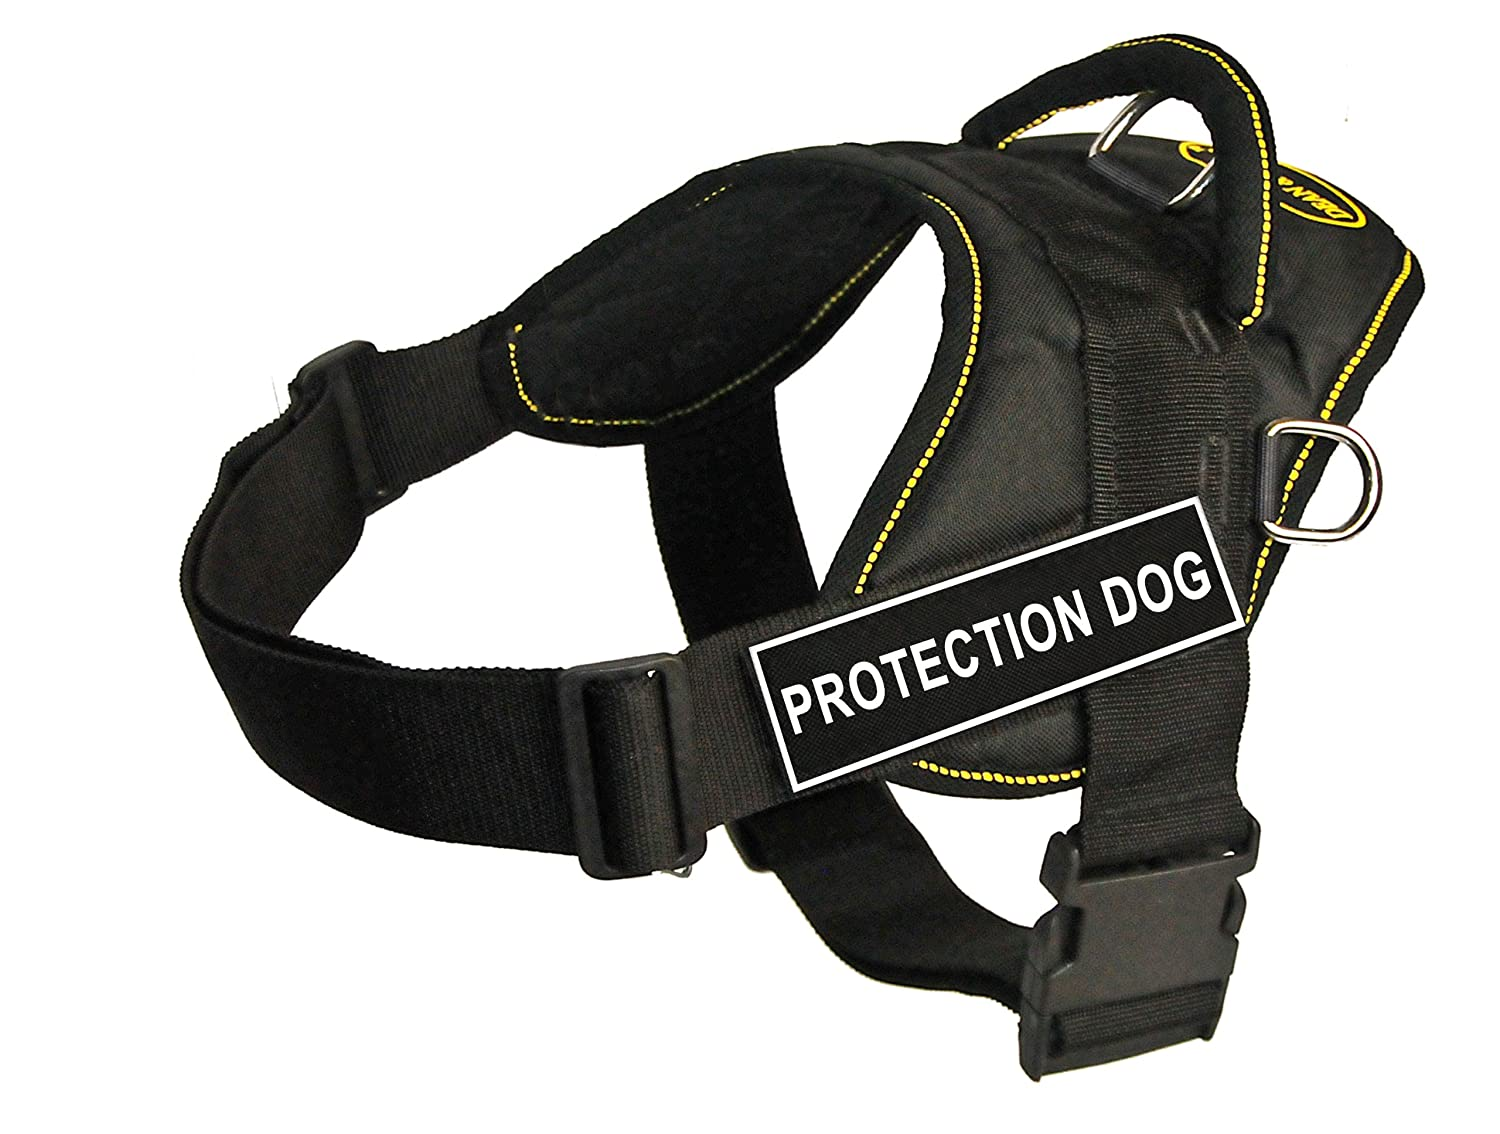 Dean & Tyler Fun Works 22-Inch to 27-Inch Pet Harness, Small, Predection Dog, Black with Yellow Trim